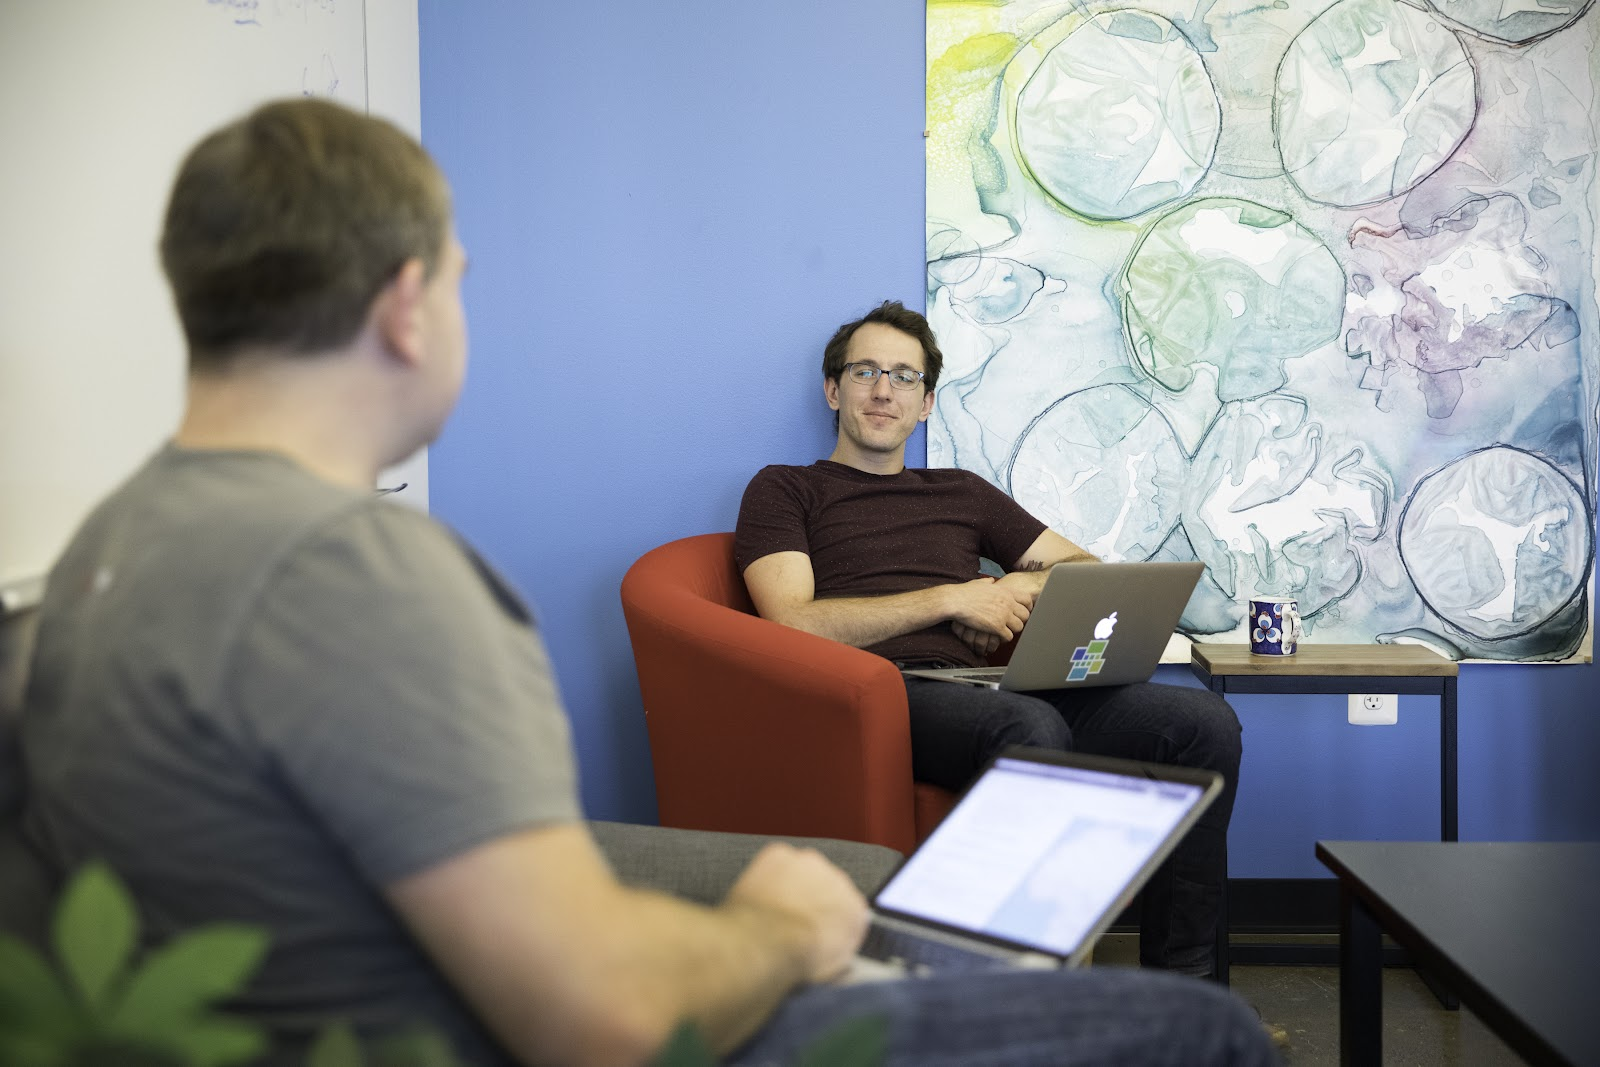 Two male colleagues sitting with computers in front of art work